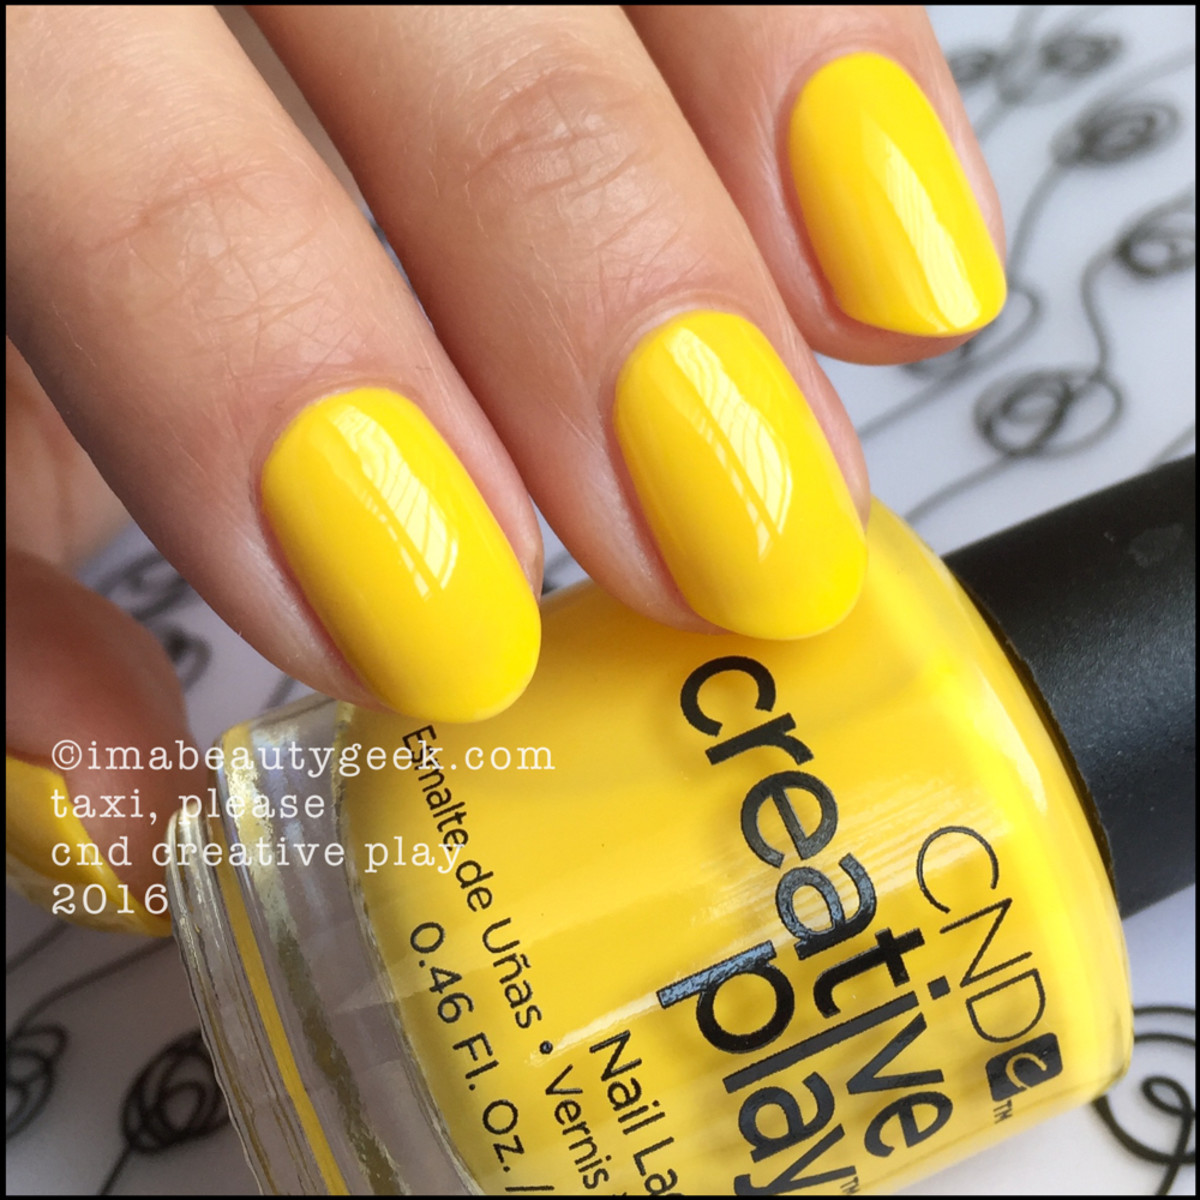 CND Creative Play Taxi Please_CND Creative Play Nail Polish Swatches